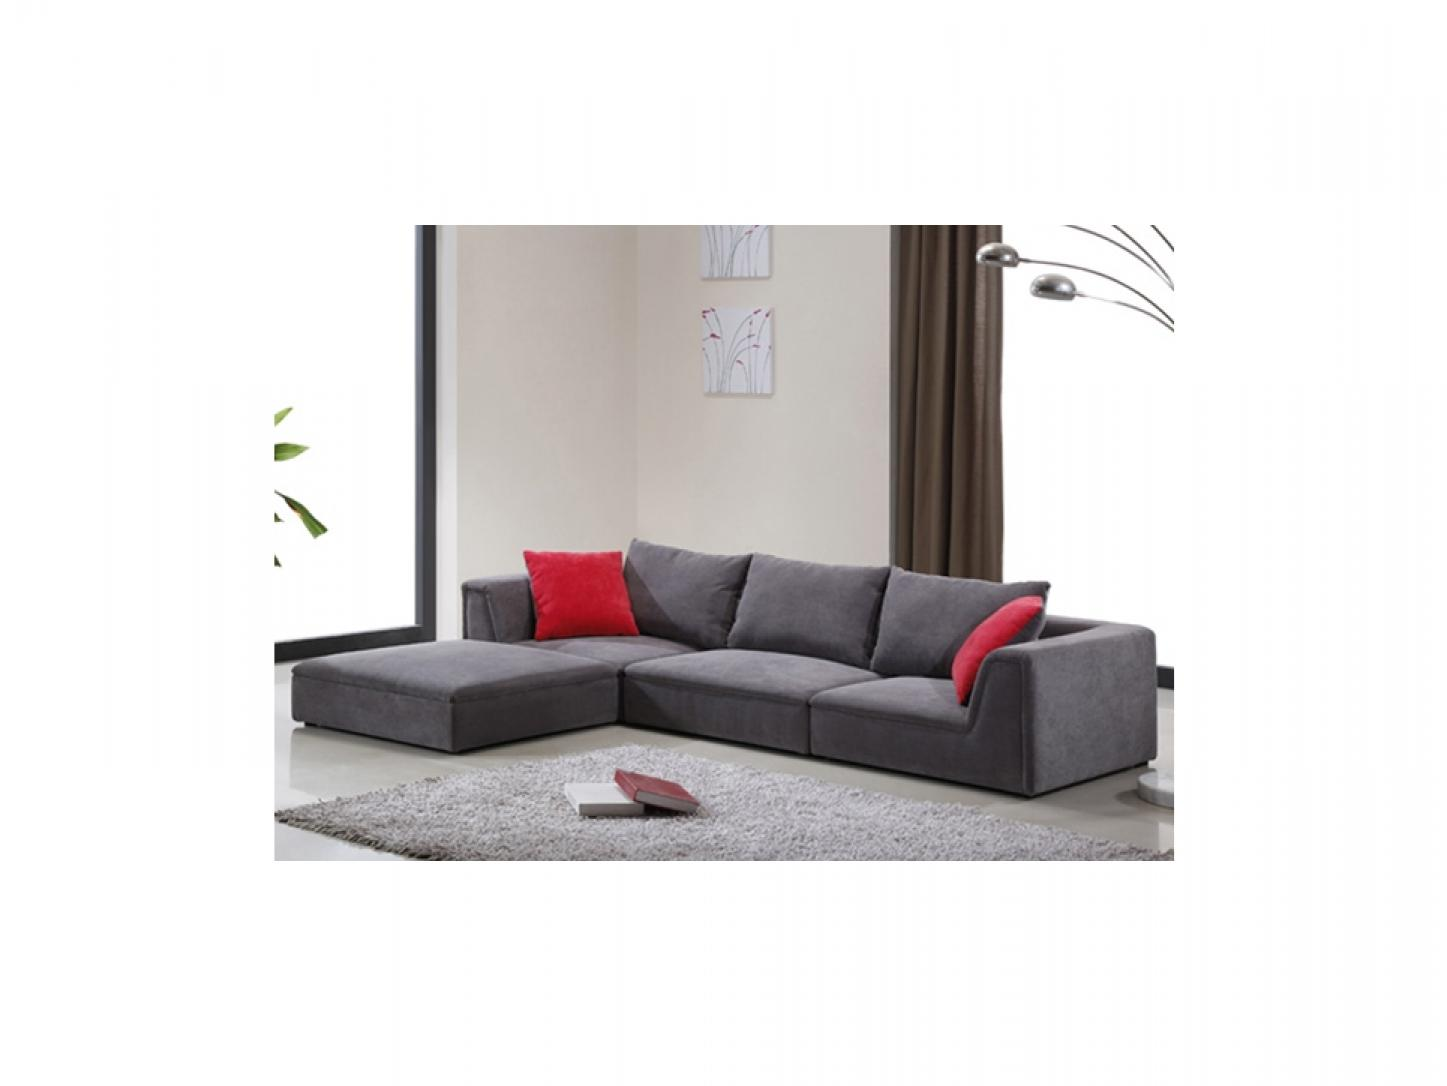 Ikea grey corner sofa sofas pinterest grey corner for Canape ikea modulable